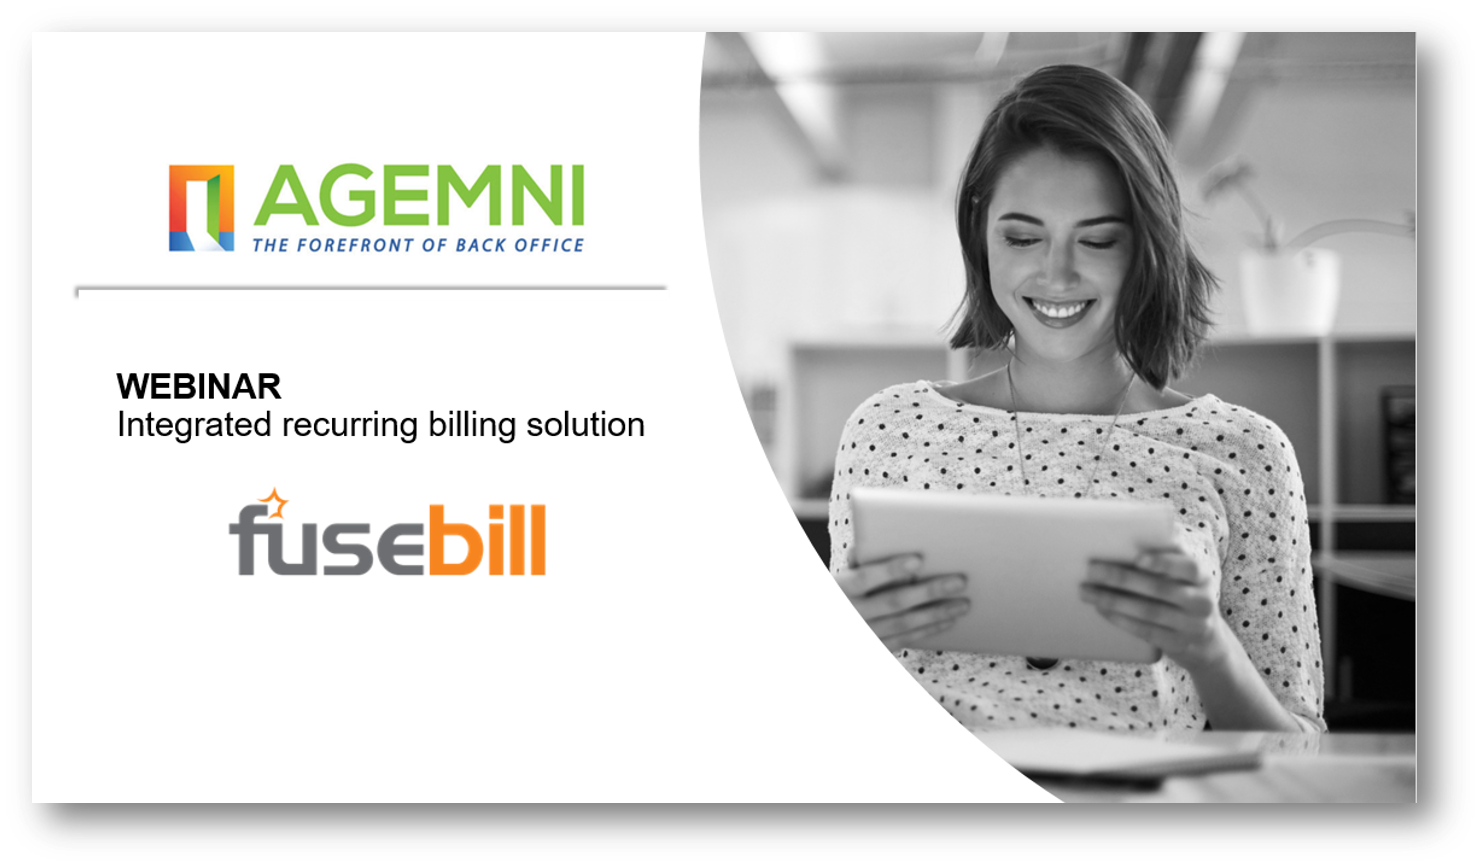 Decrease time spent on billing by 80%